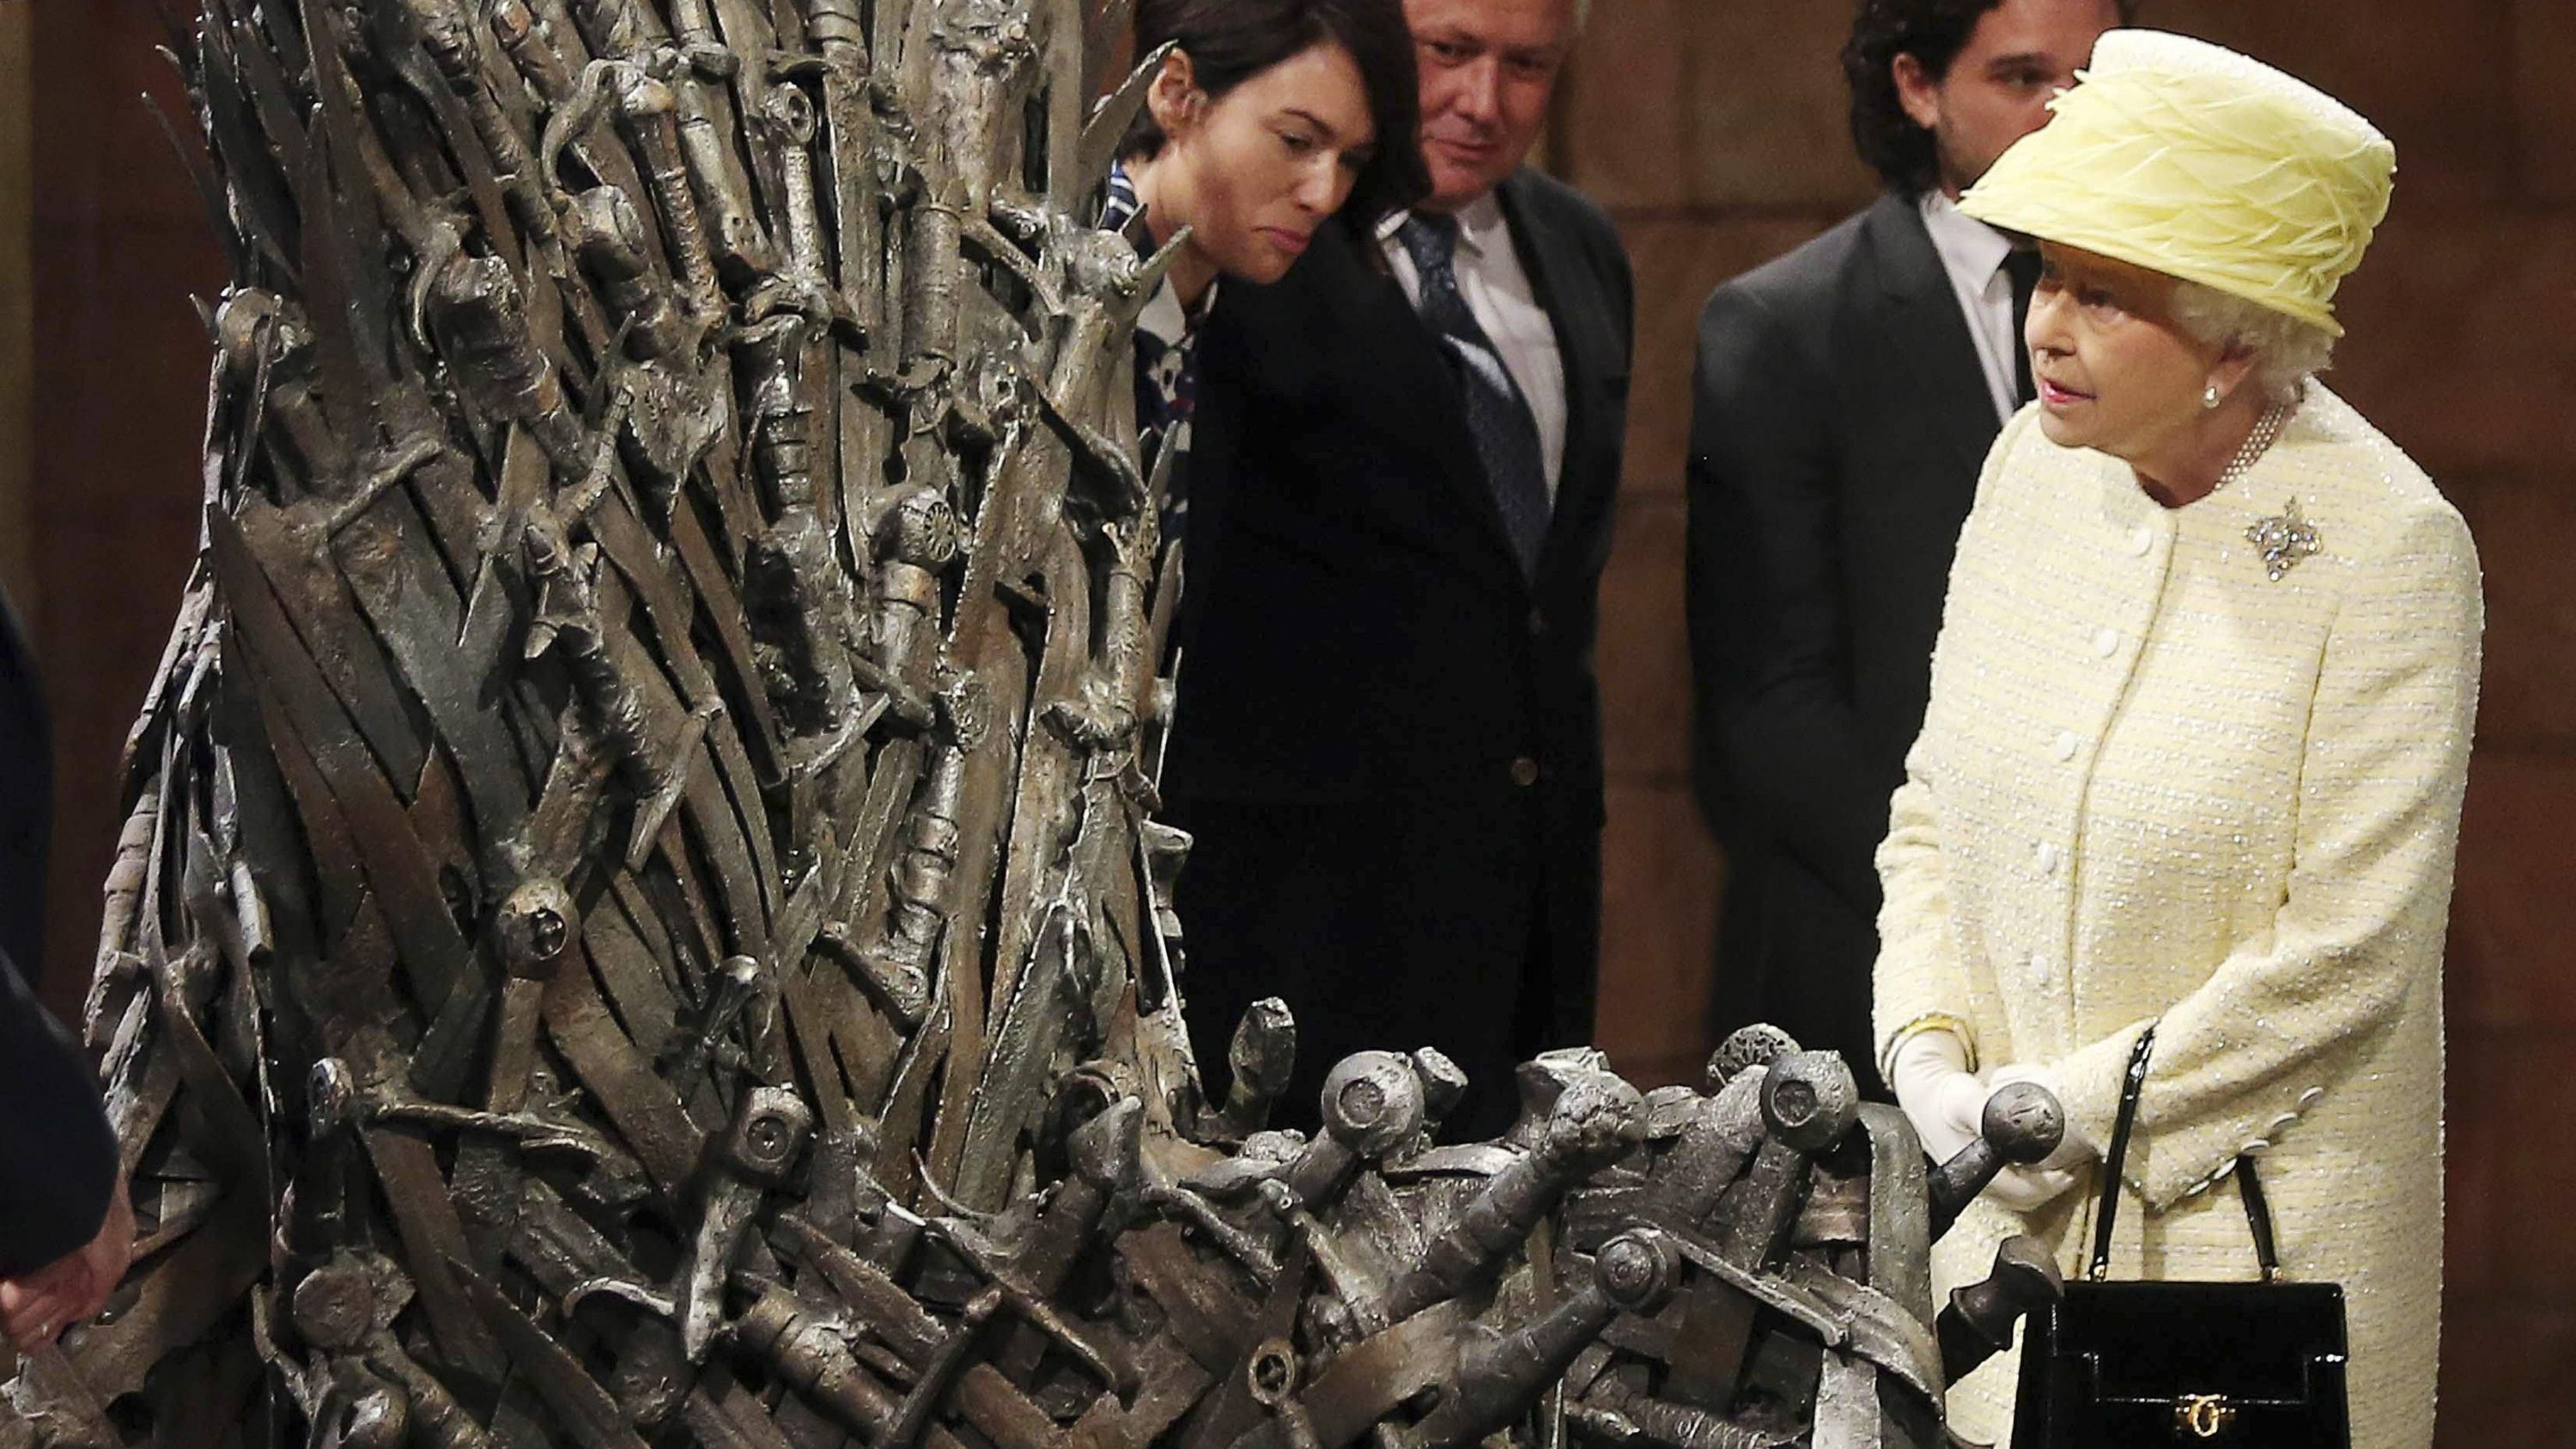 Britain's Queen Elizabeth looks at the Iron Throne next to Game of Thrones cast members Kit Harington (2nd R), Conleth Hill (2nd L) and Lena Headey (L), on the set of the television series in the Titanic Quarter of Belfast, Northern Ireland, June 24, 2014.